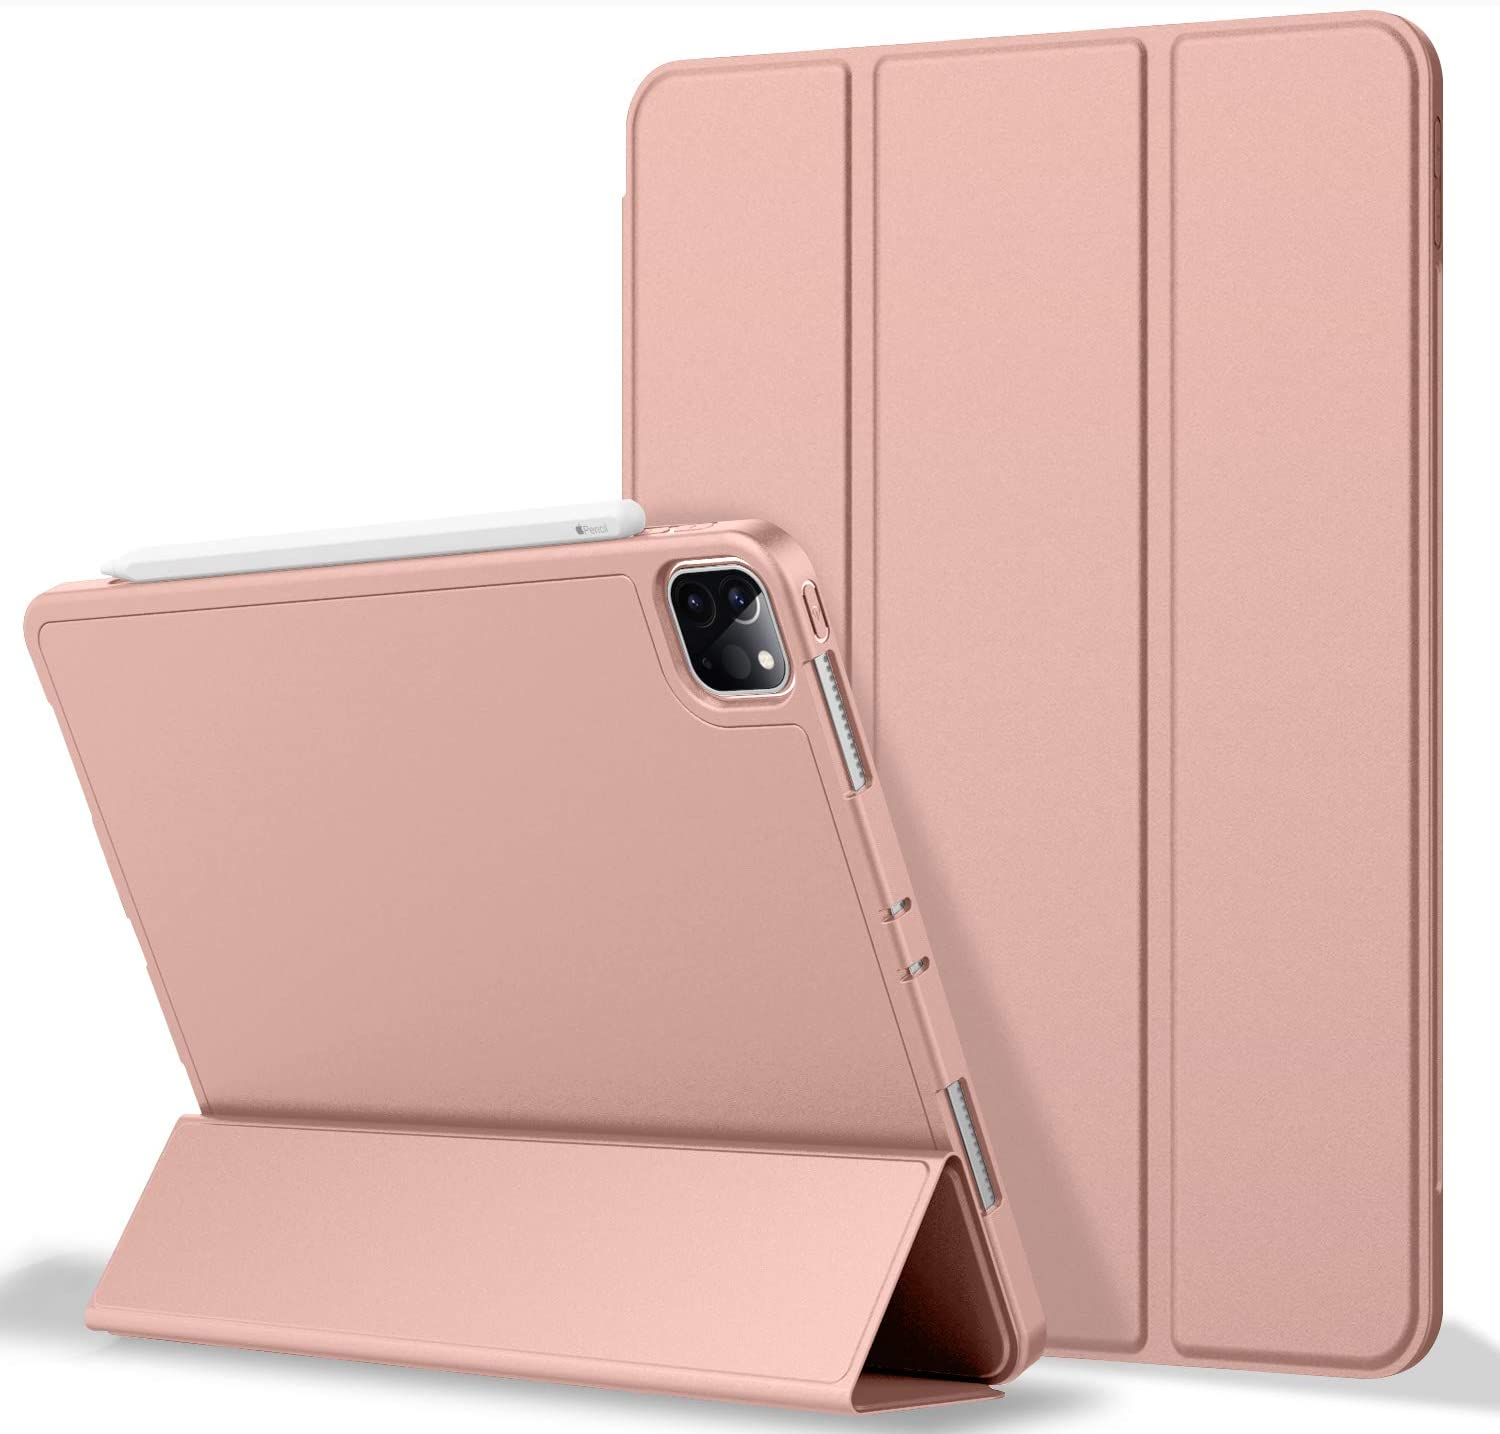 ZryXal iPad Pro 11 Case 2020 with Pencil Holder (2nd Generation), Premium Protective Case Cover with Soft TPU Back and Auto Sleep/Wake Feature for 2020/2018 iPad Pro 11 (Rose Gold)